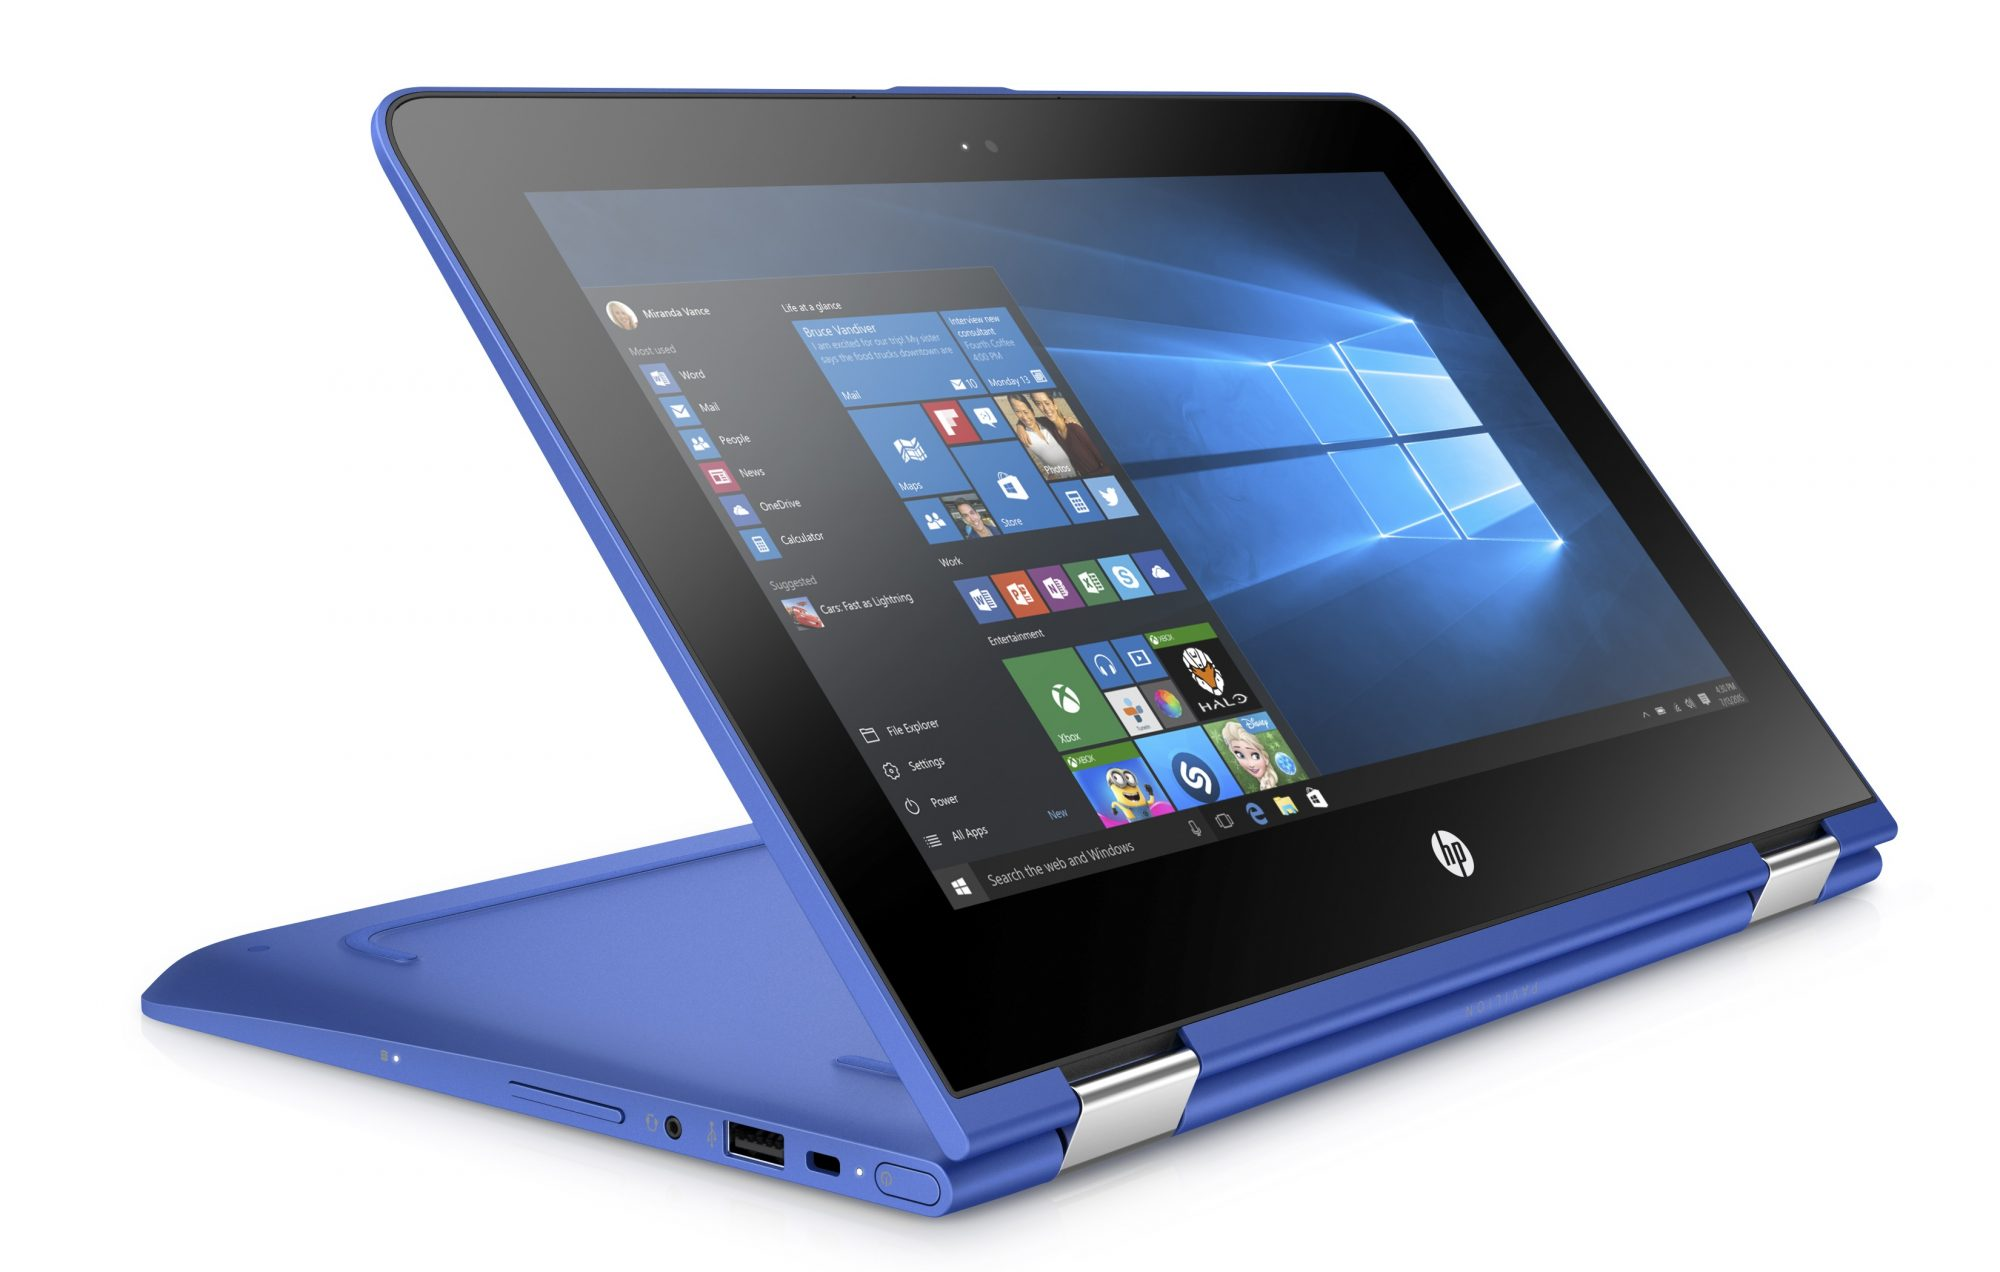 HP back to school slideshow 1 - HP Pavilion x360 11_Media Mode_Dragonfly Blue_Right Facing-2